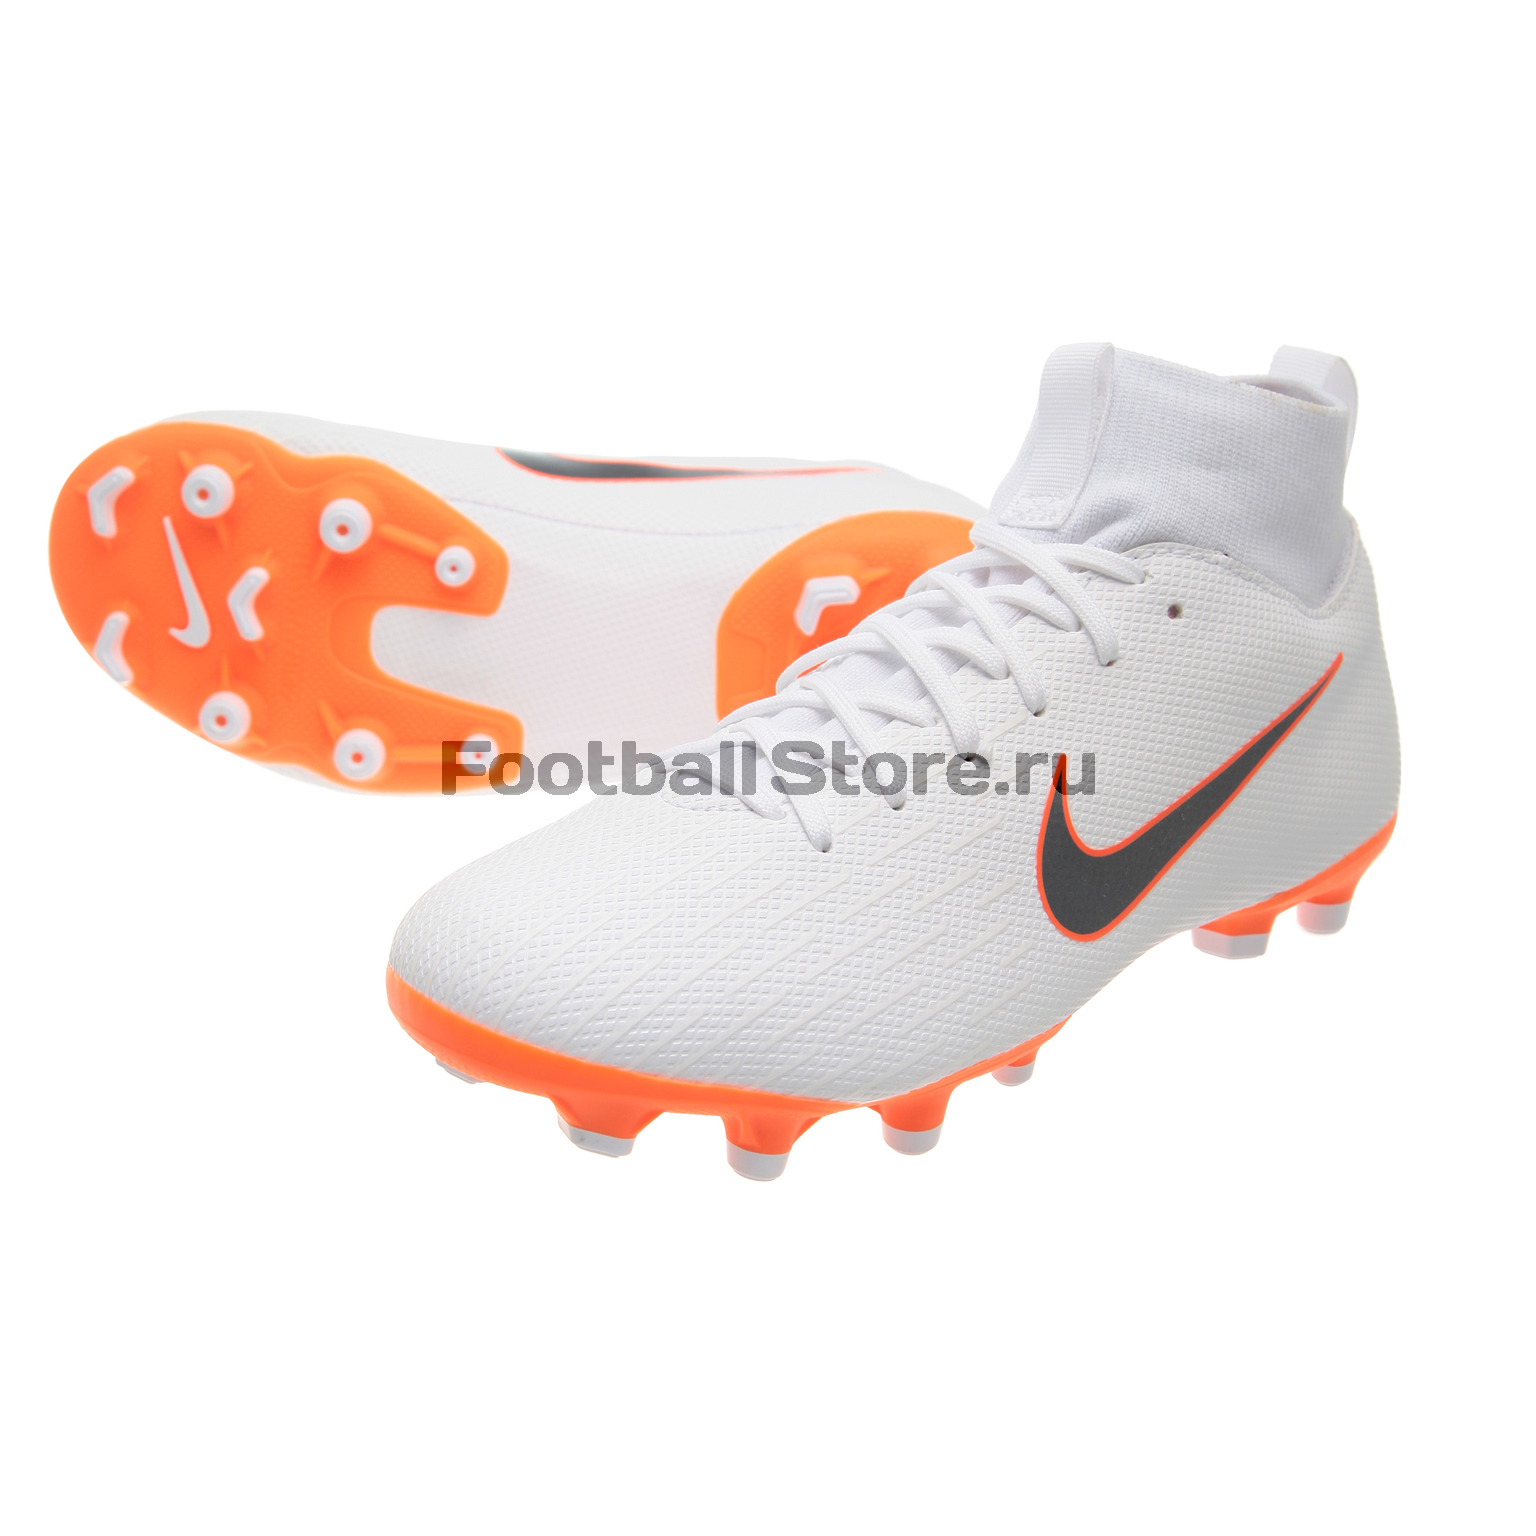 Бутсы детские Nike Superfly 6 Academy GS FG/MG AH7337-107 бутсы детские nike superfly academy gs cr7 fg mg aj3111 600